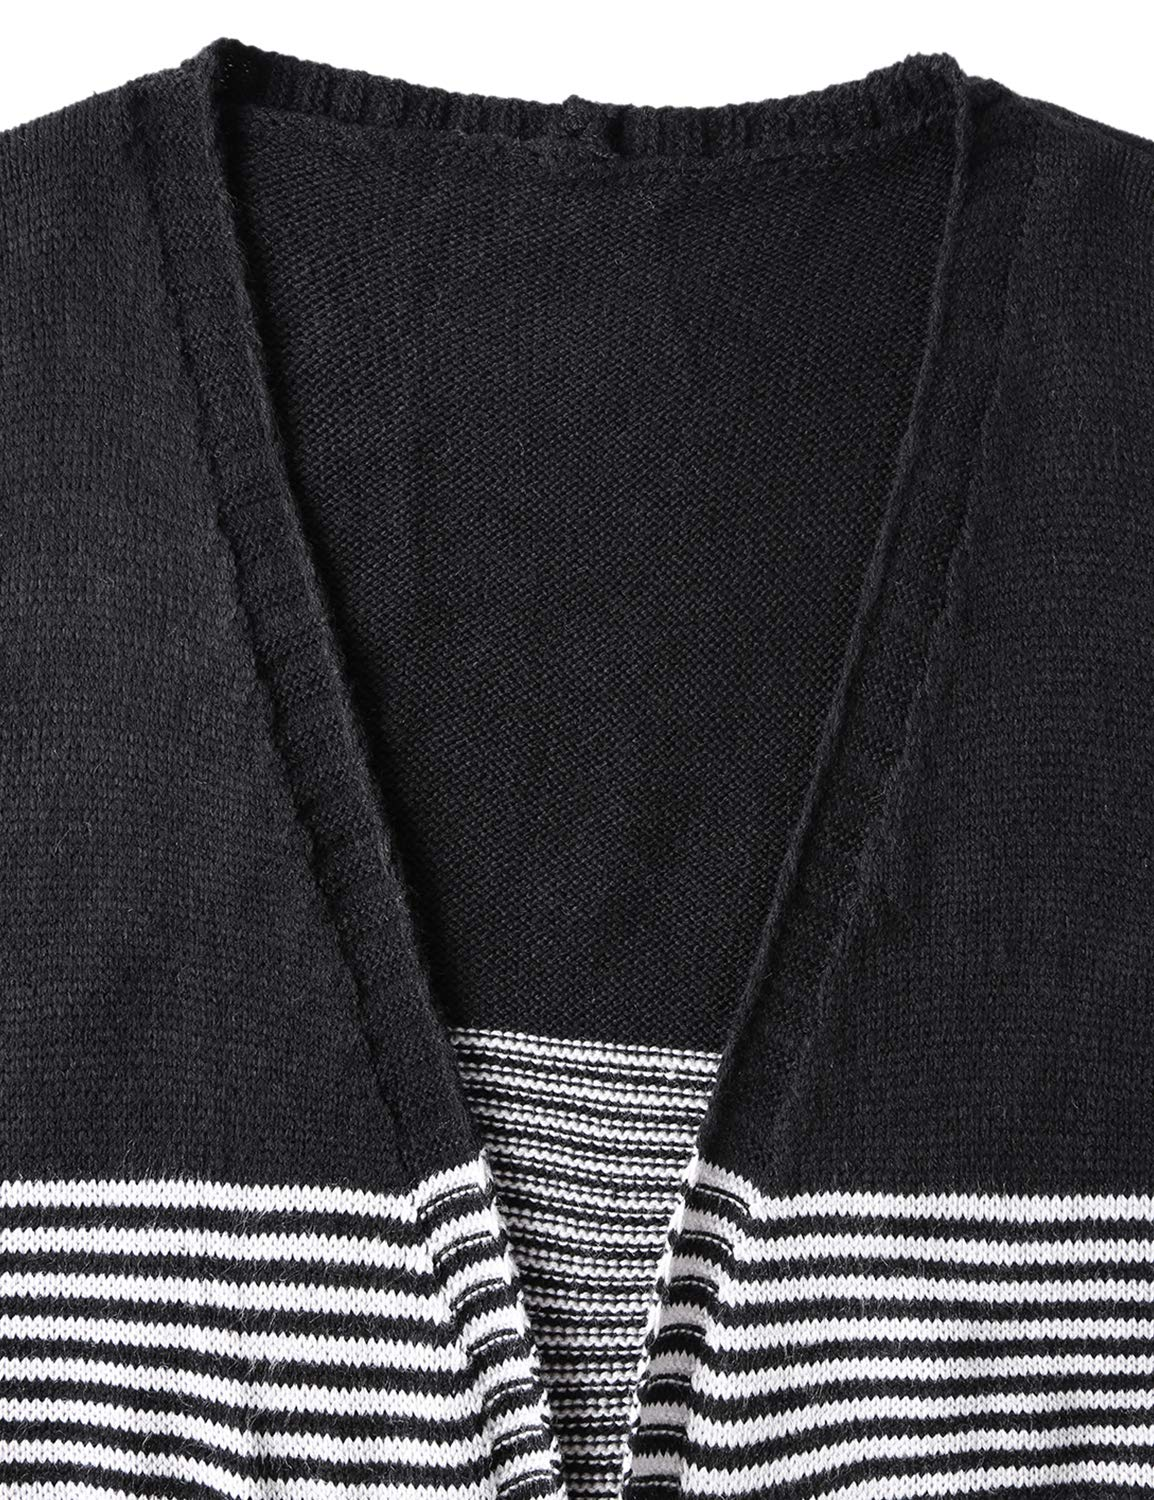 Blooming Jelly Ladies Striped Open Front Longline Black Knit Sweater Cardigans for Women with Pocket and Ribbed Hem,Black S